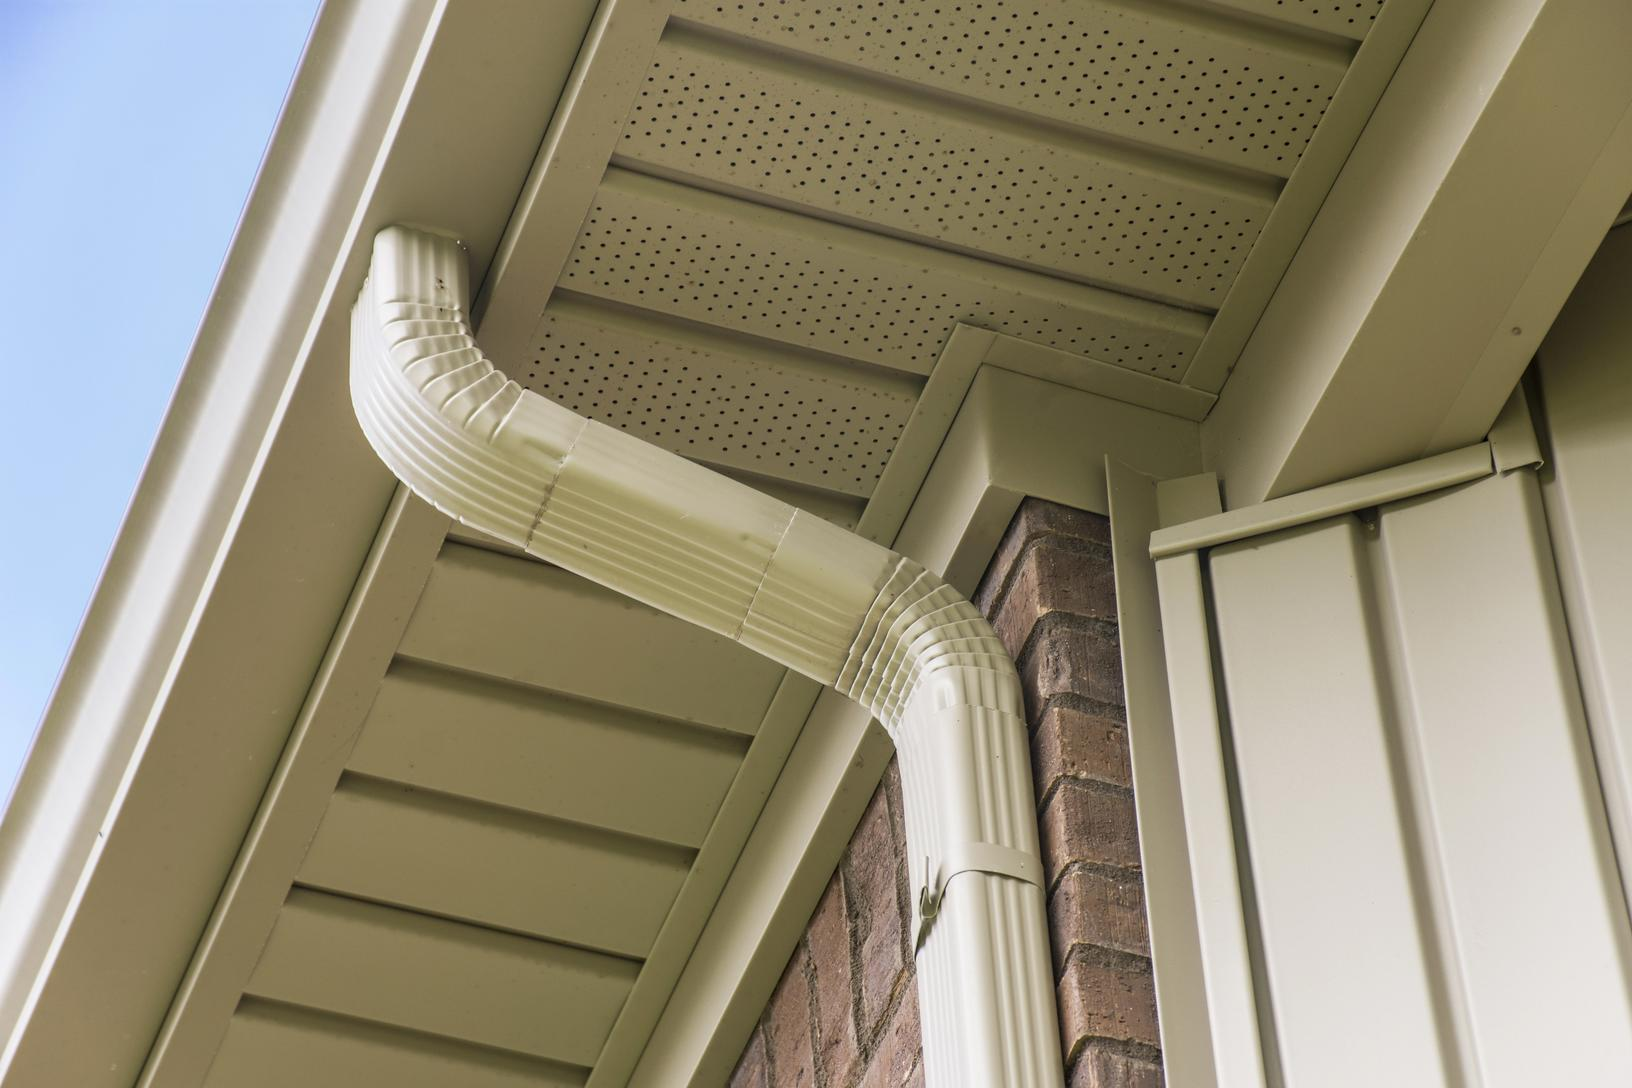 Gutters in Southwest Suburbs of Chicago, Orland Park, Bolingbrook, Naperville